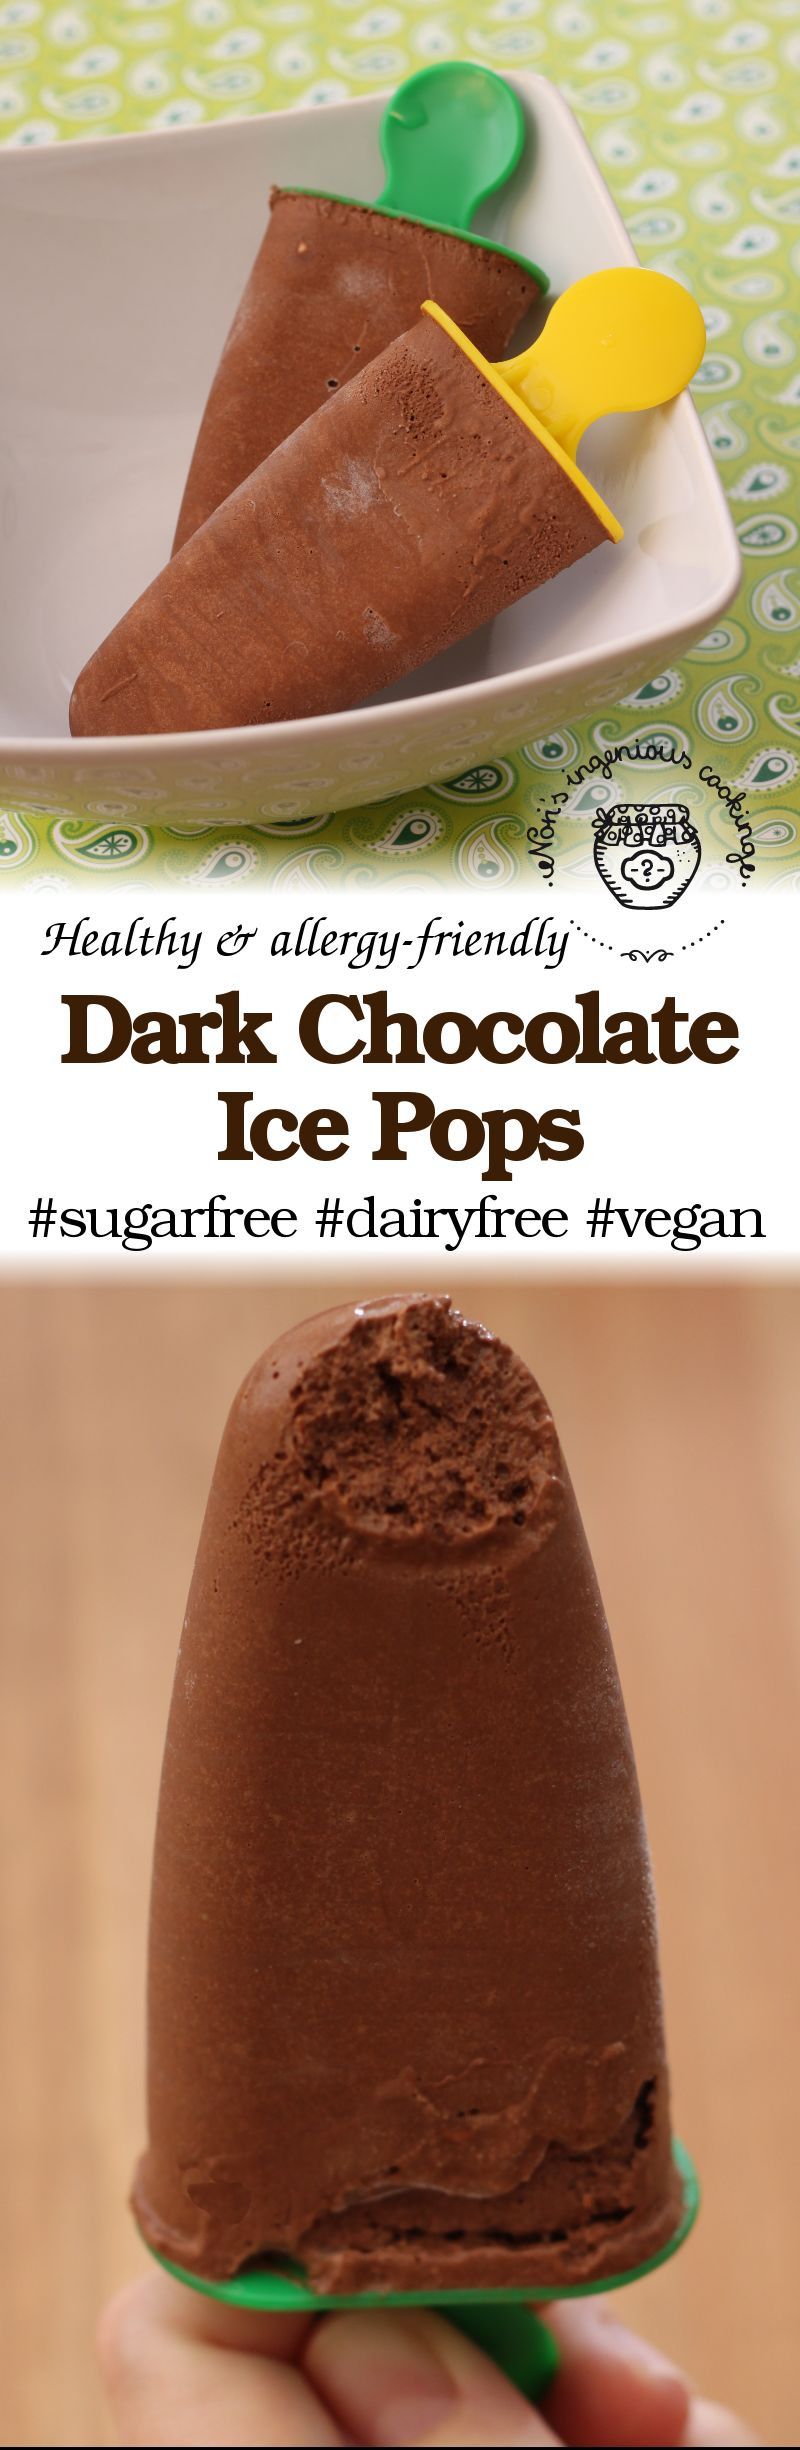 Diet-friendly dark chocolate ice pops